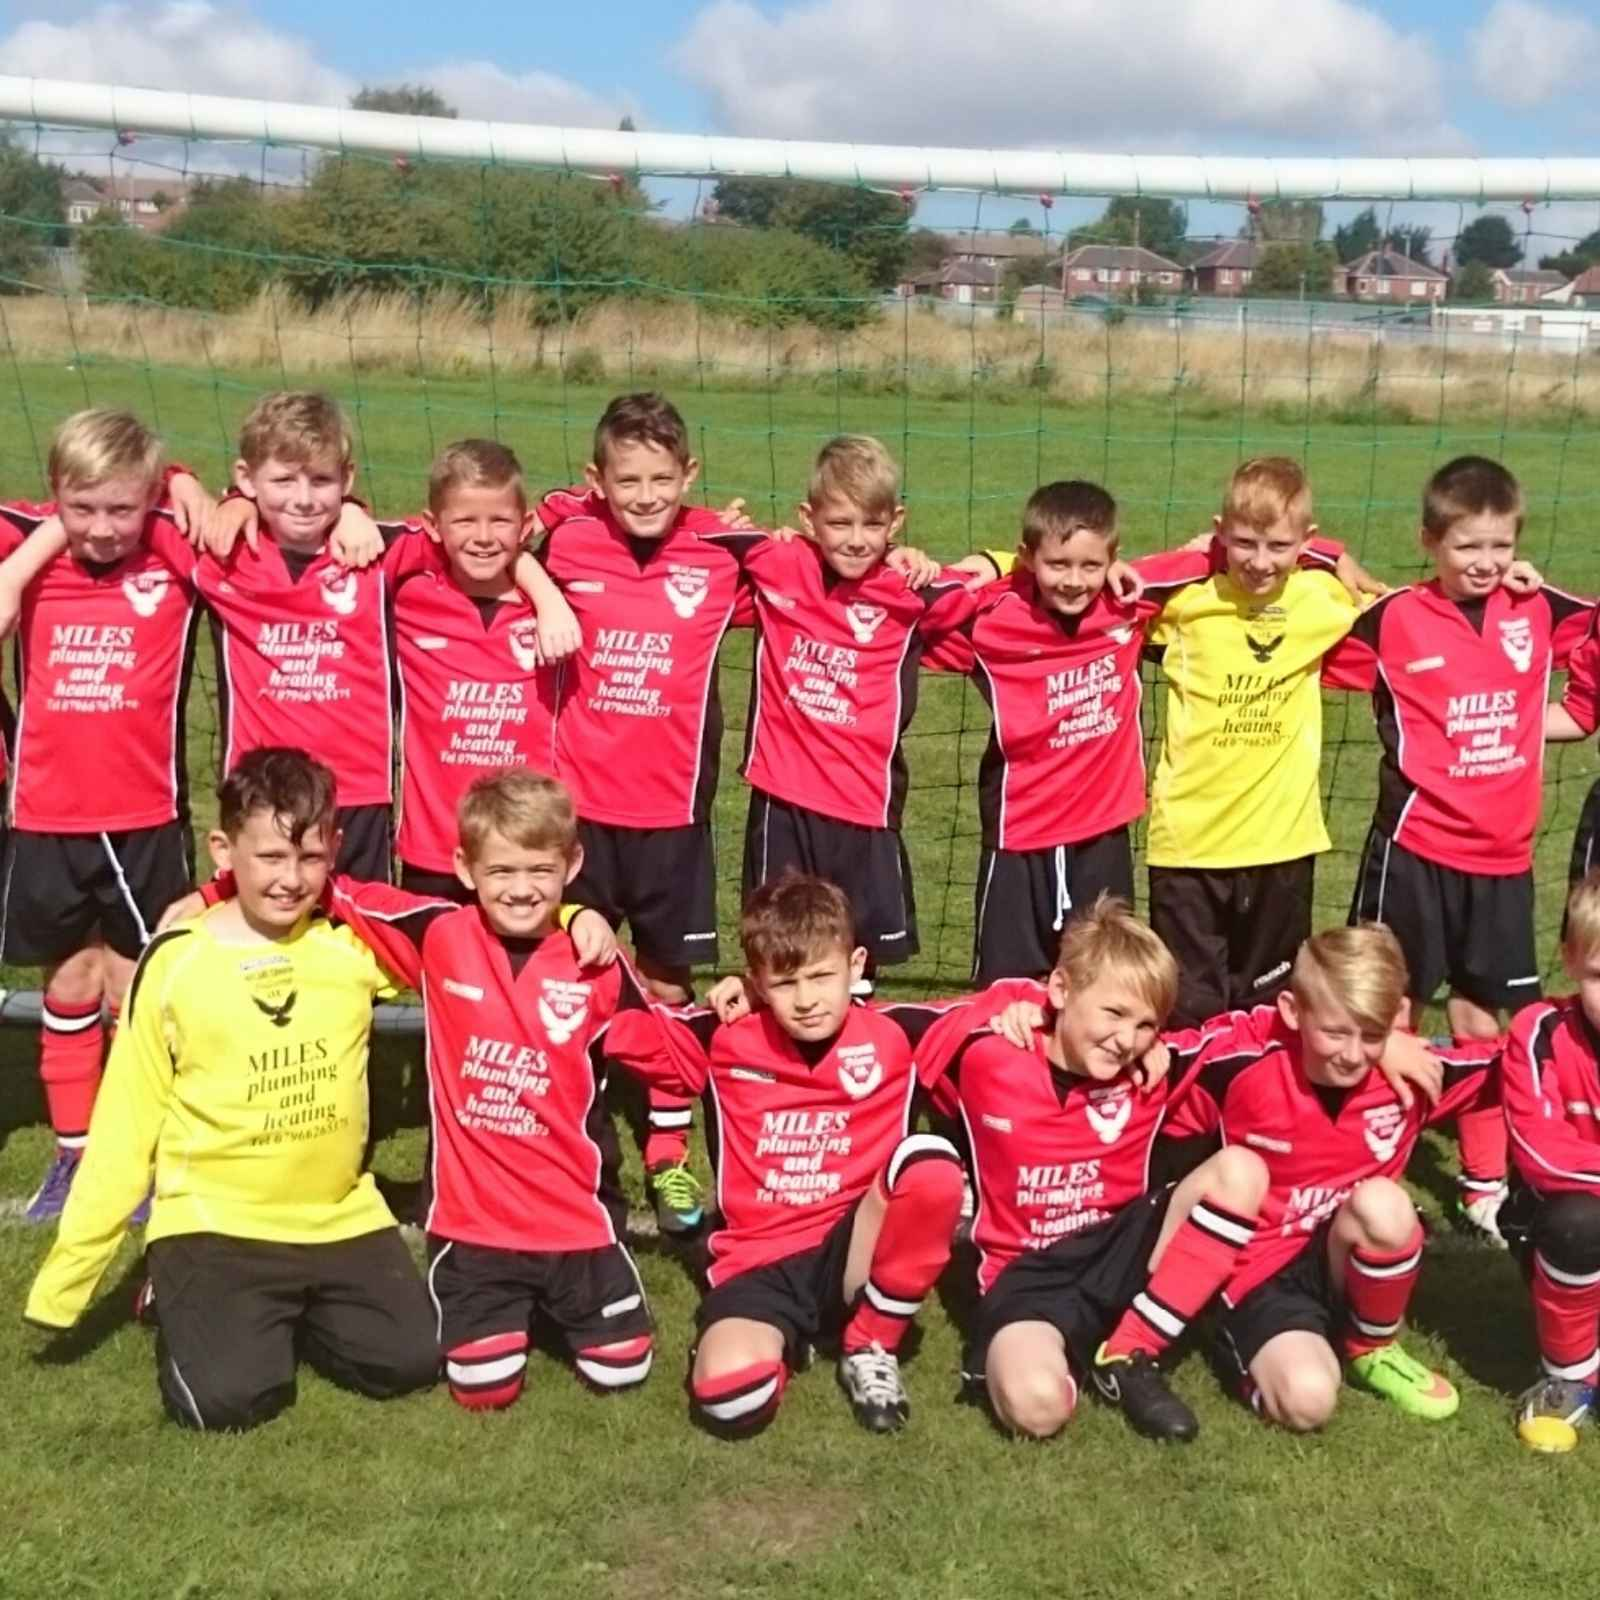 U10's Next Training Session - Elmhirst Playing Fields  - Thurs 26th May  - 6:00pm